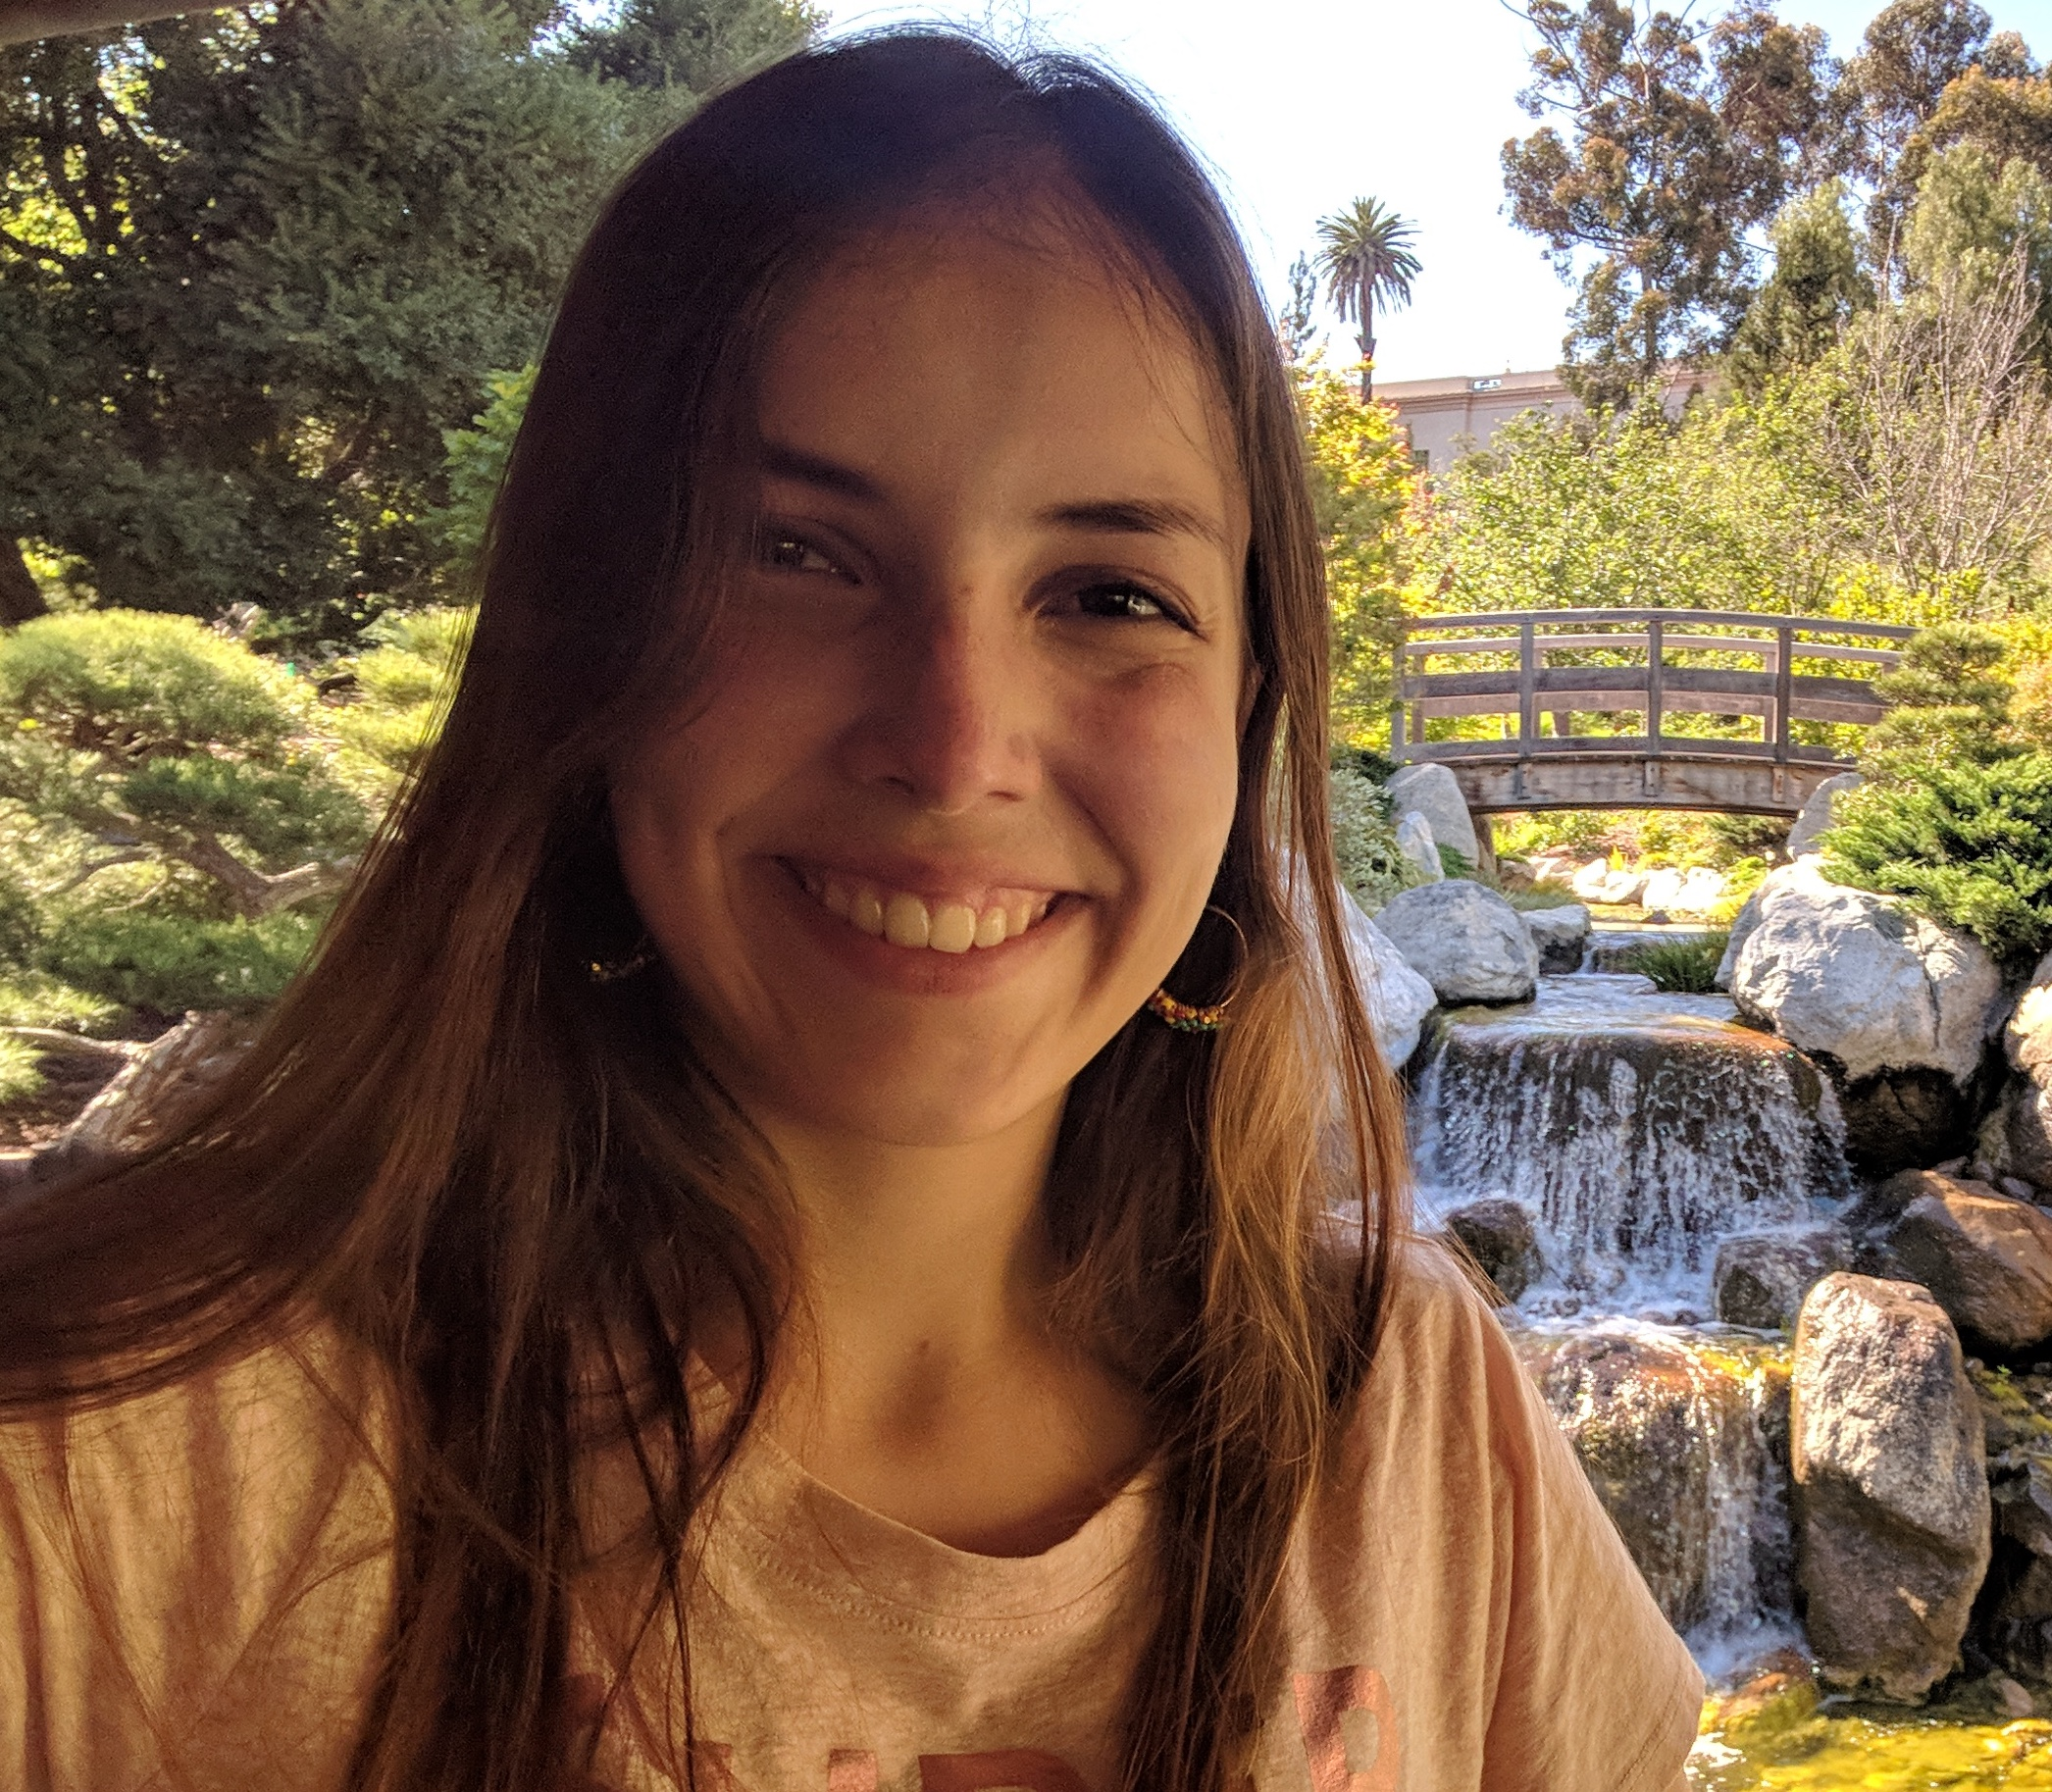 Maria J. Anderson Coto - Maria J. Anderson-Coto is a PhD student exploring team dynamics and performance. Through her current work, she aims to understand how elite esports teams' and professional players' performances are influenced by internal and external factors. She is also interested in gender and inclusion around video games.mj.anderson@uci.edu